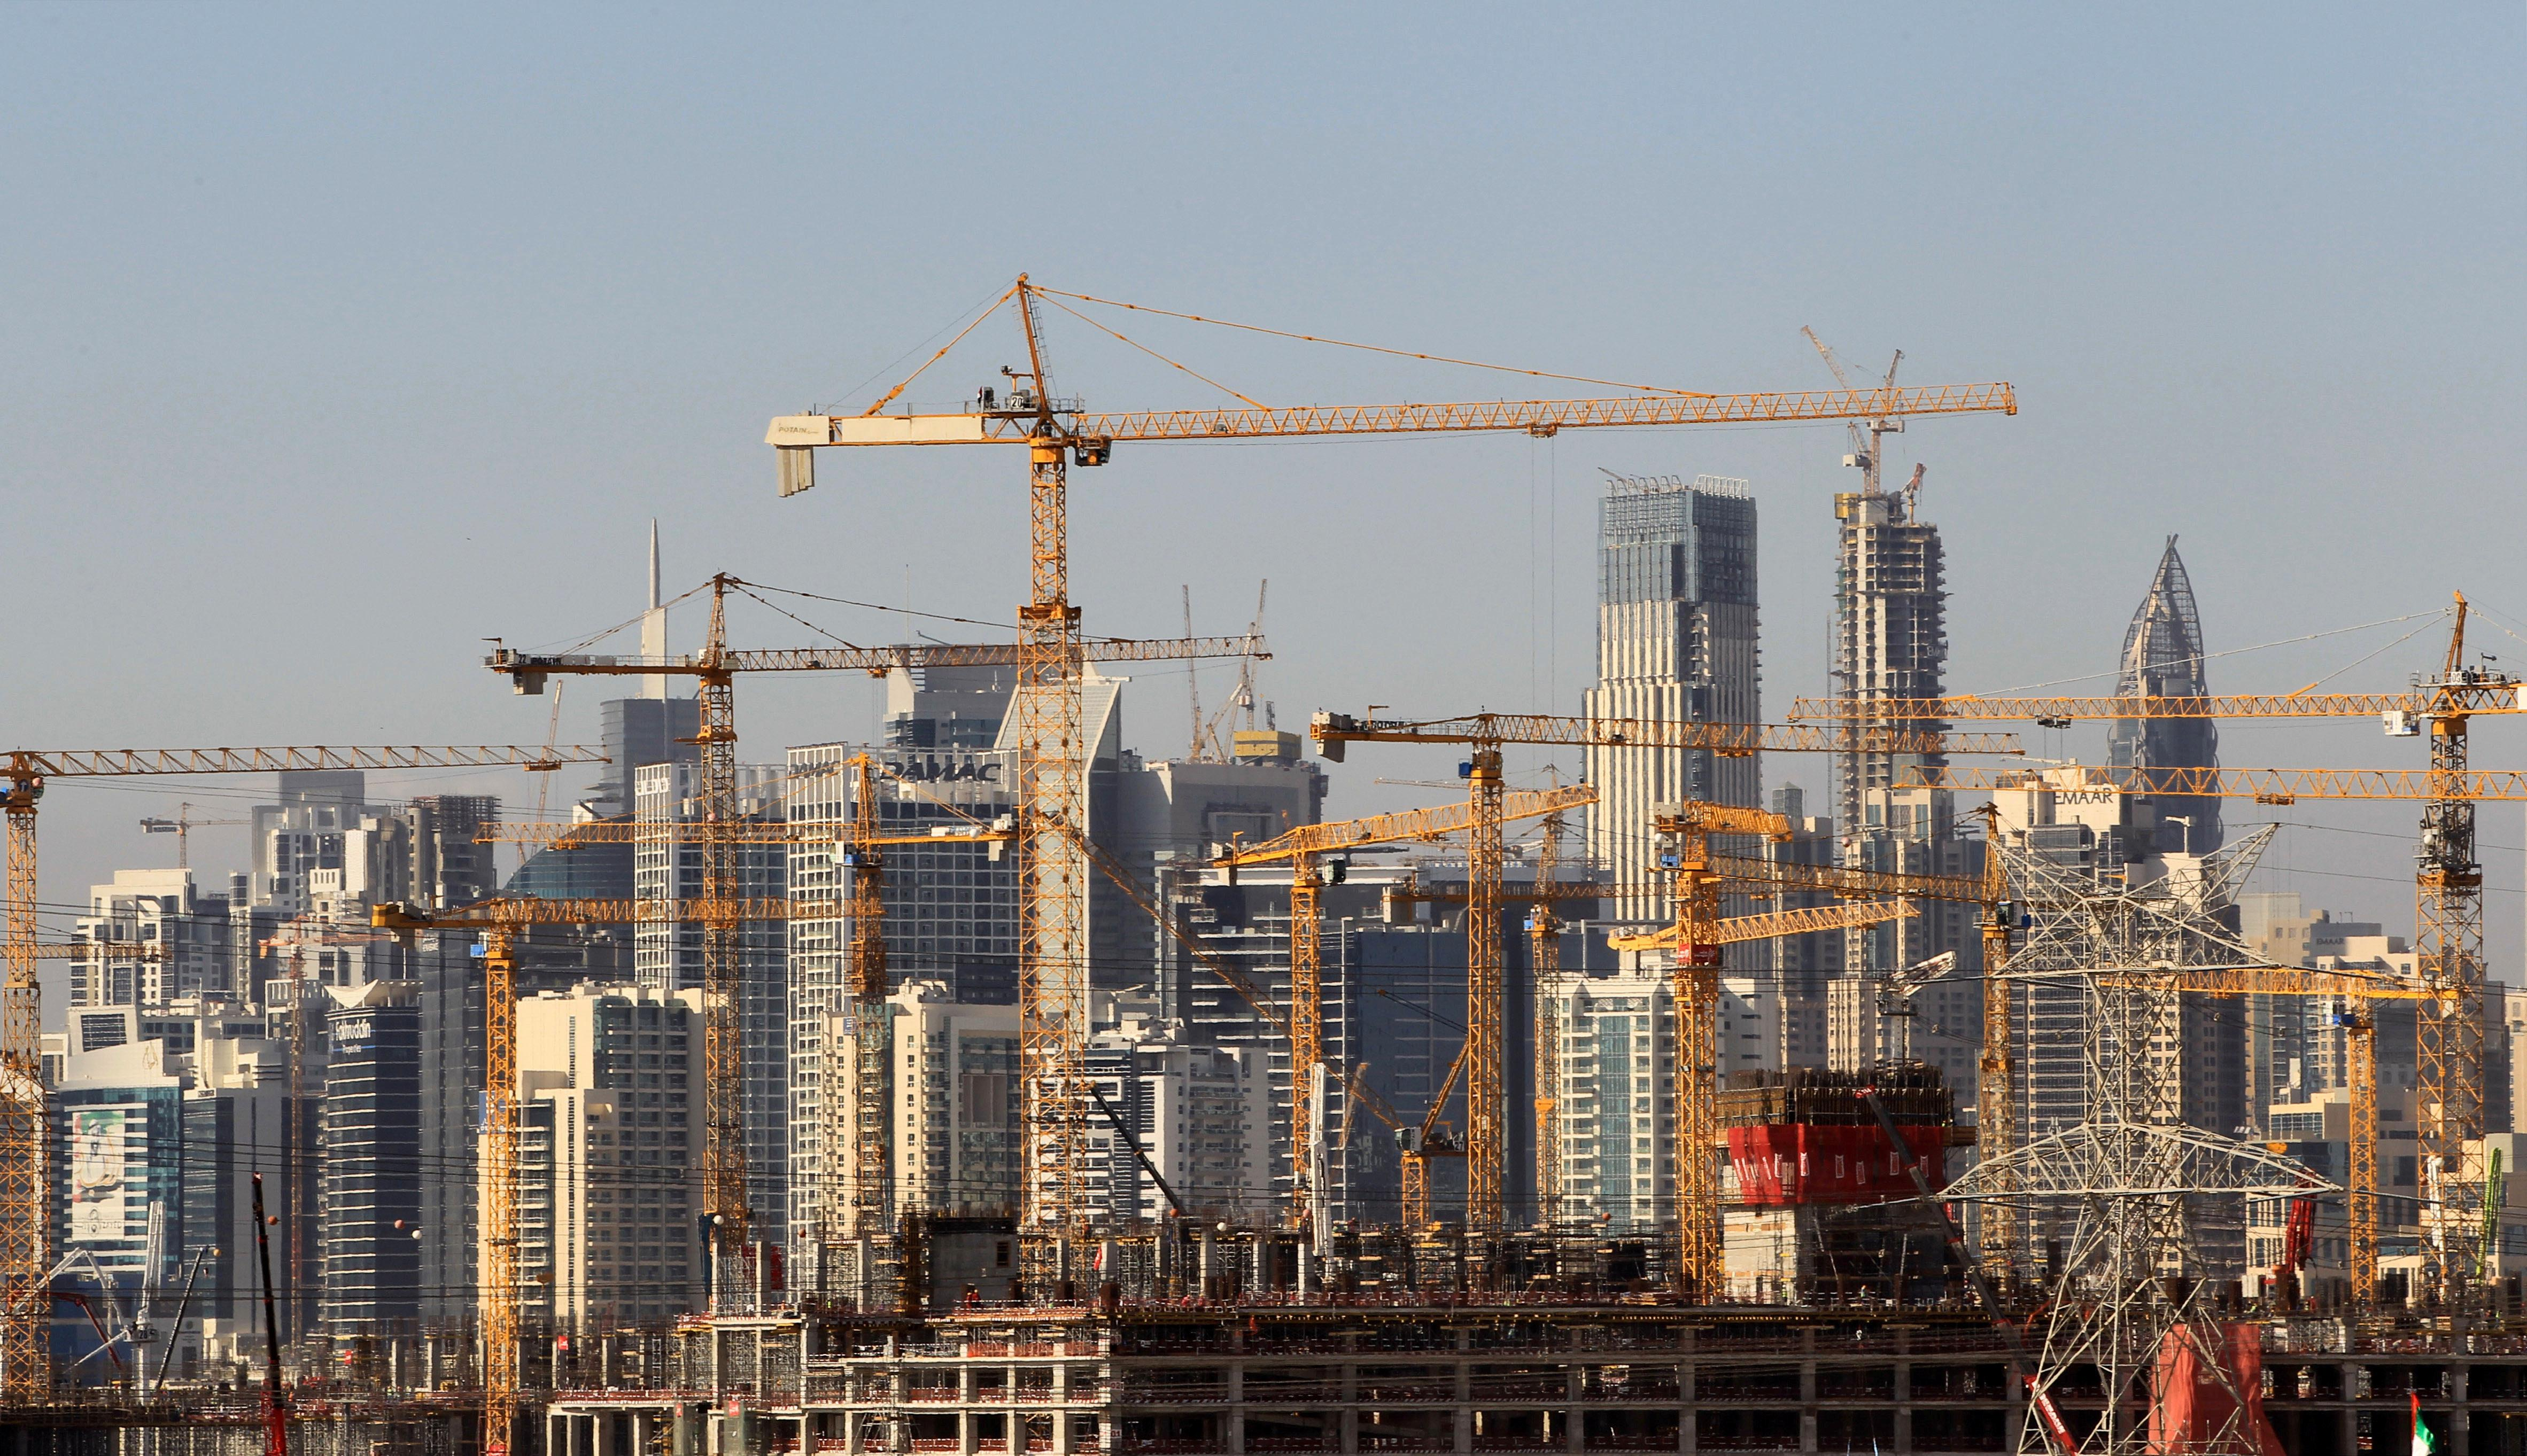 Dubai home prices to fall further in 2019 on oversupply: S&P